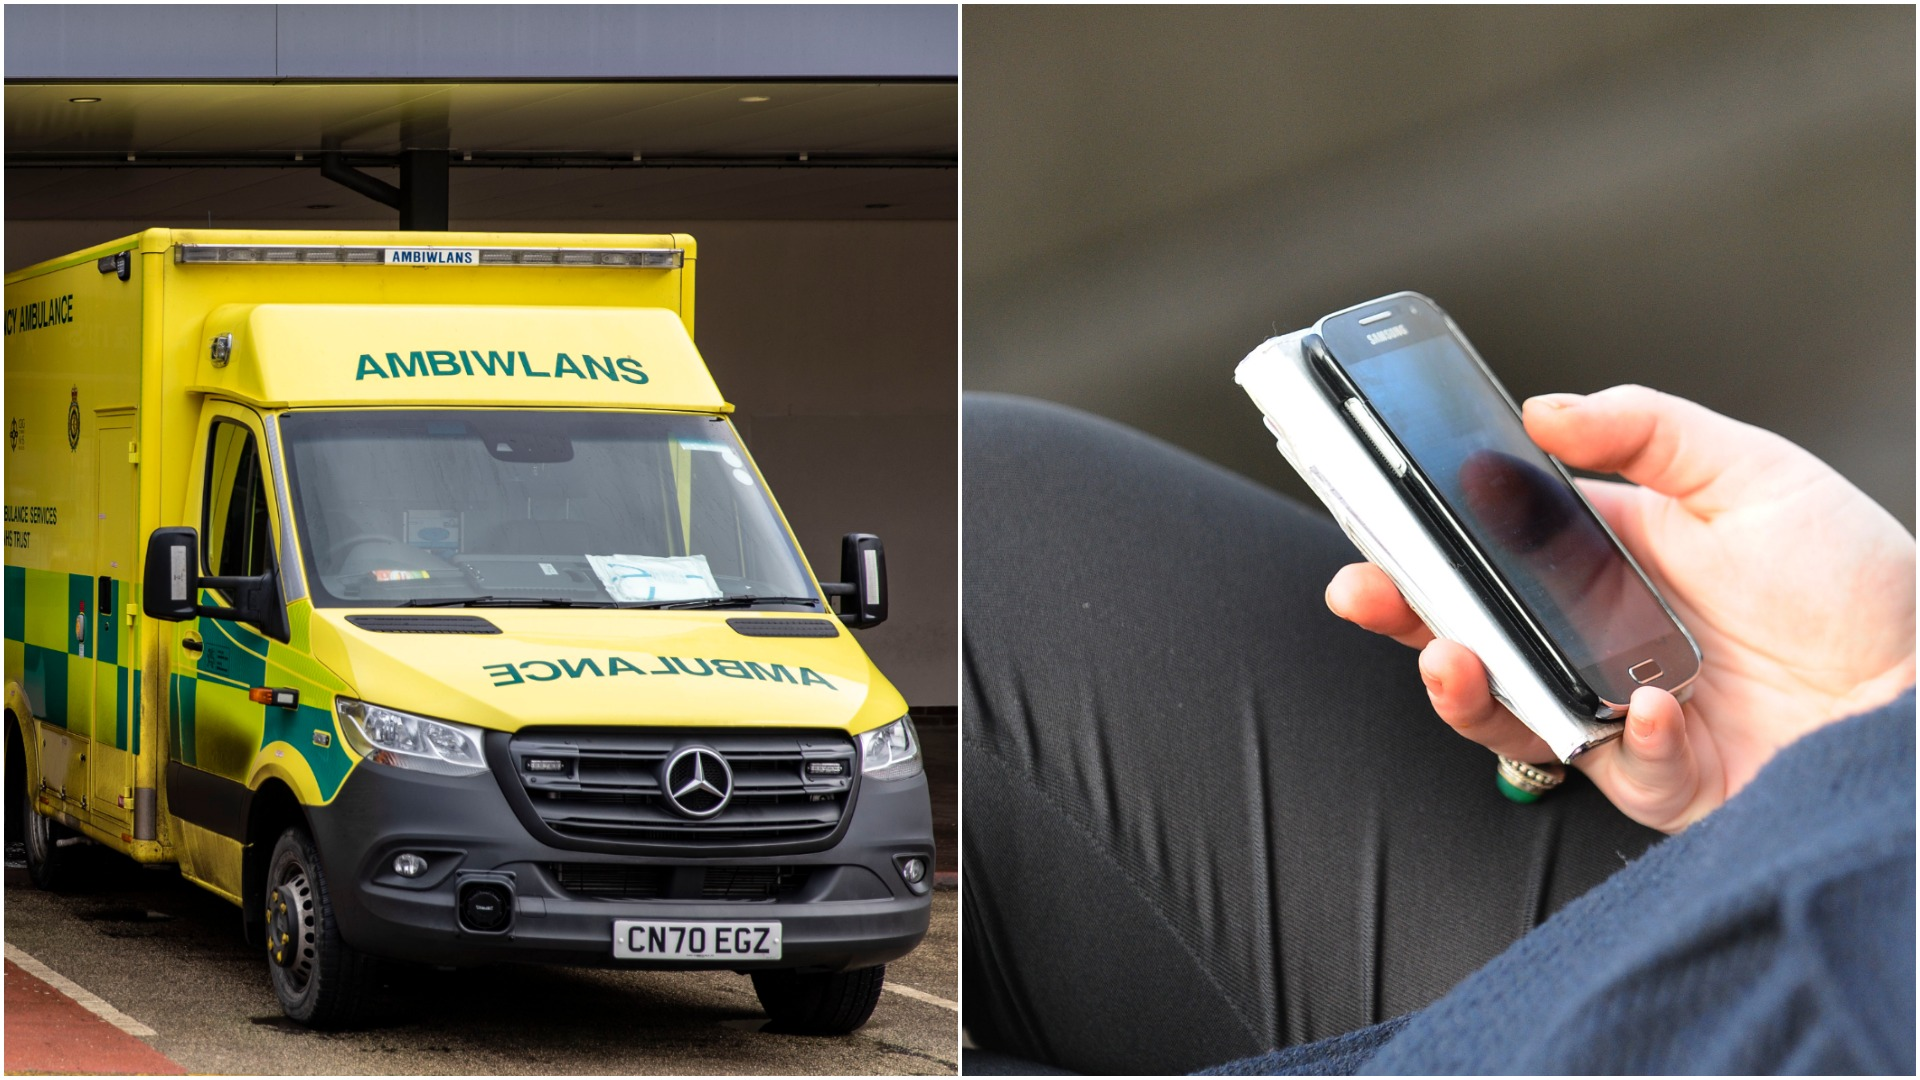 'Onion juice in eyes' among calls to Wales Ambulance Service last year   ITV News